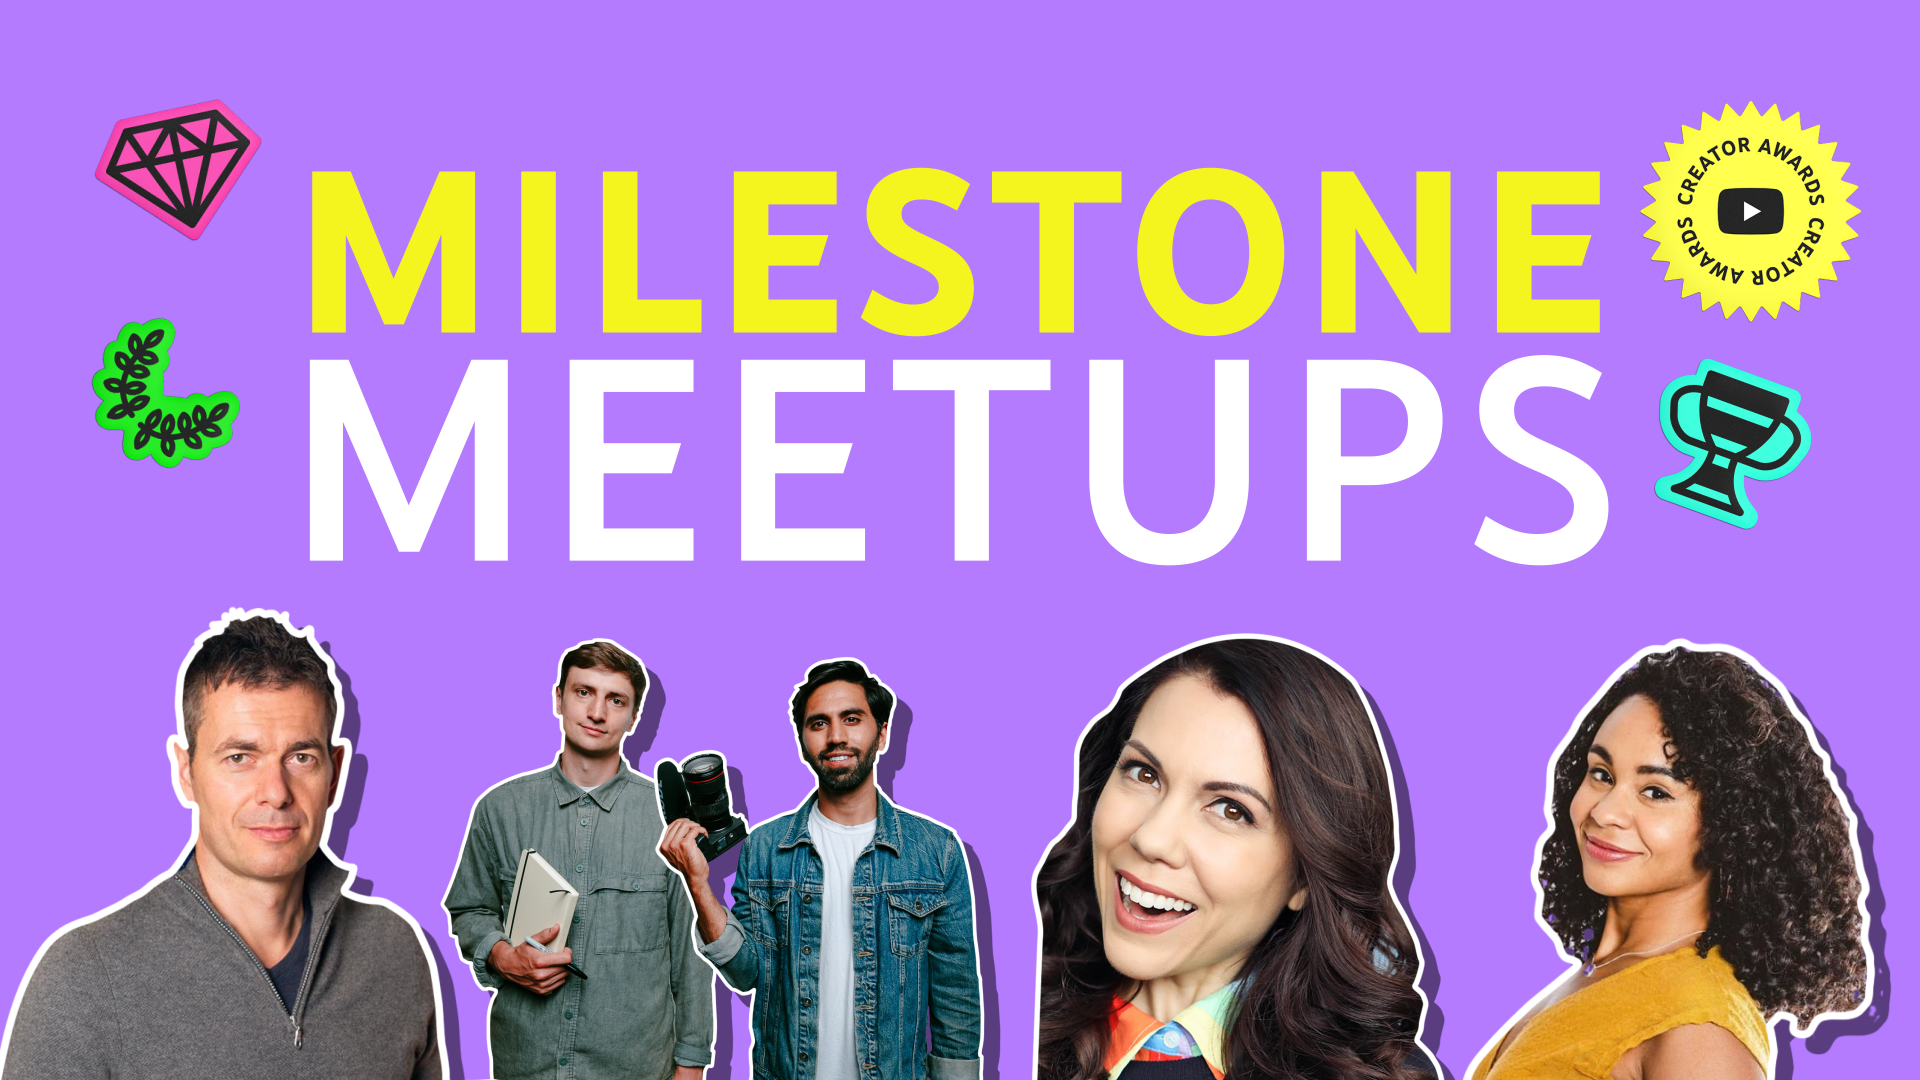 Milestone Meetups: Checking in with Colin and Samir, Jenny Lorenzo, and Jo Franco